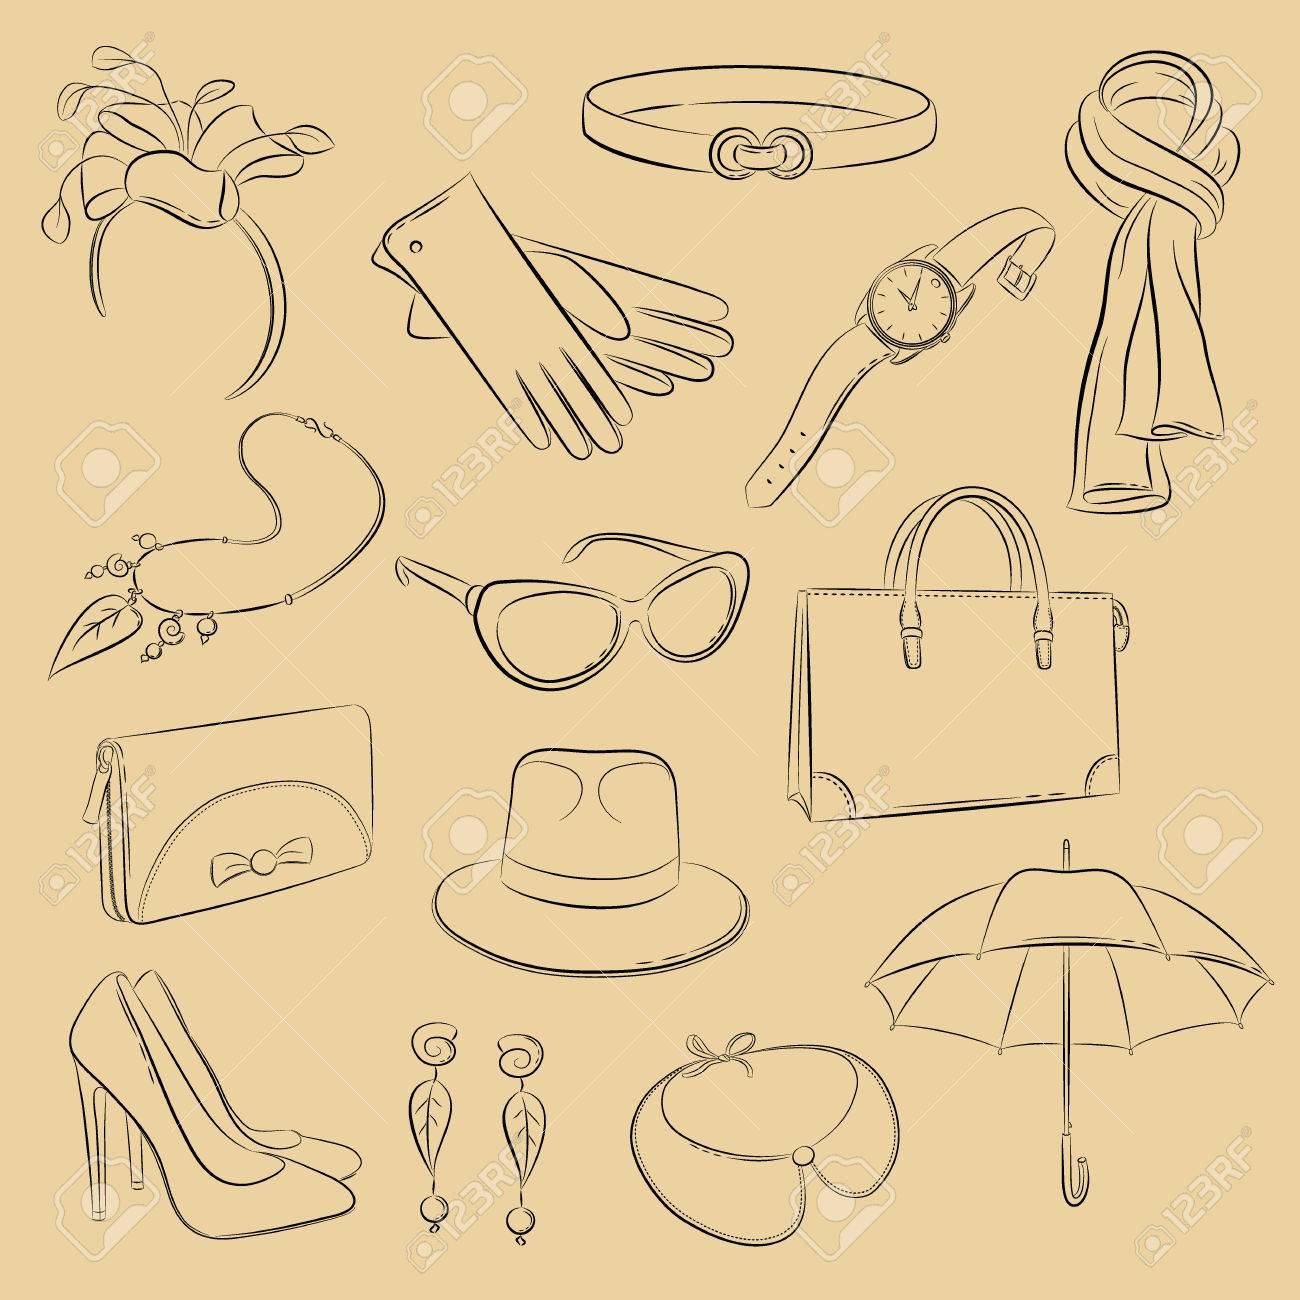 c2f22e1fc35 Vector sketch set. Collection of realistic fashionable accessories  scarf